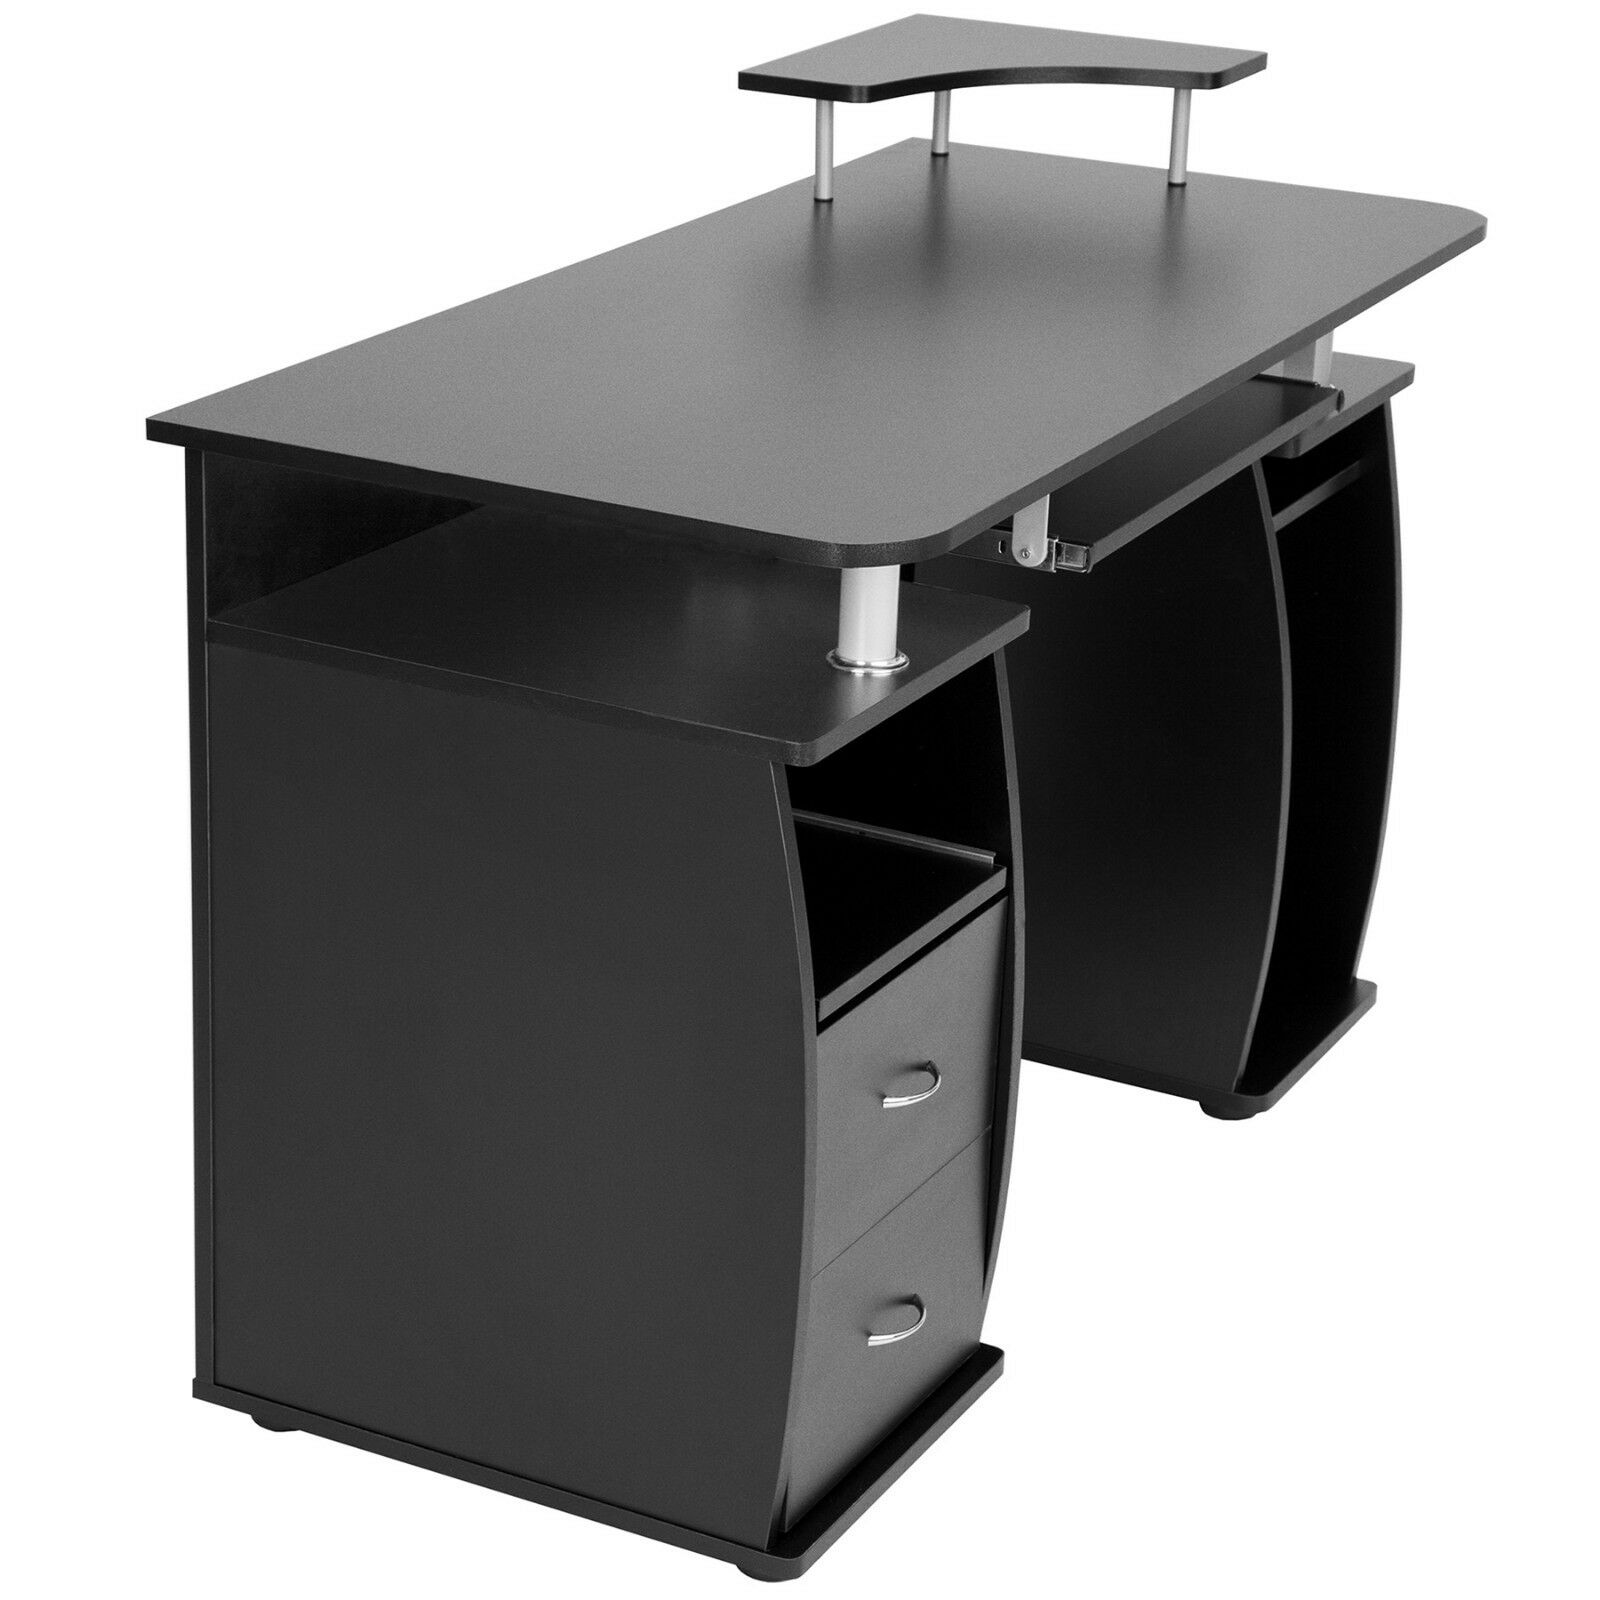 Bureau informatique table de l 39 ordinateur travail mobilier for Table bureau